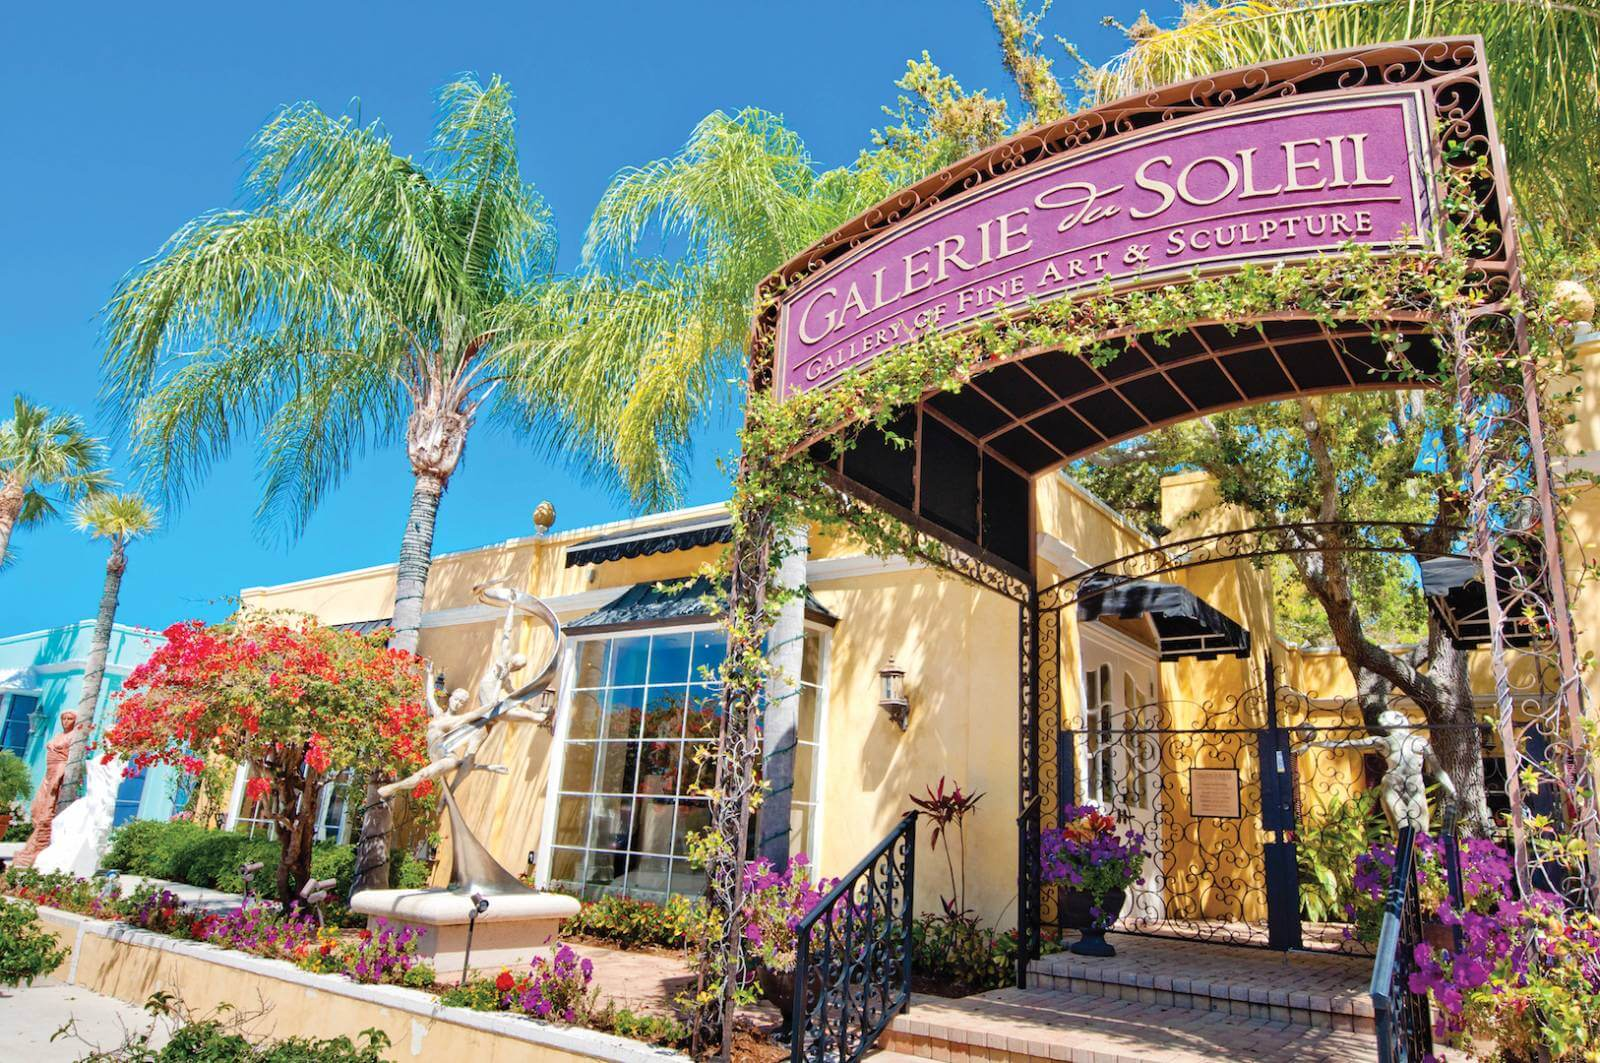 Stroll along Naples, Florida's Third Street South with its independent bookstores, art galleries, jewellers, and fashion boutiques and enjoy coffee or lunch at one of the attractive cafés and restaurants. Photo by Debi Pittman Wilkey. #NaplesFlorida #thirdstreetsouth #shopping #artgalleries #vacation